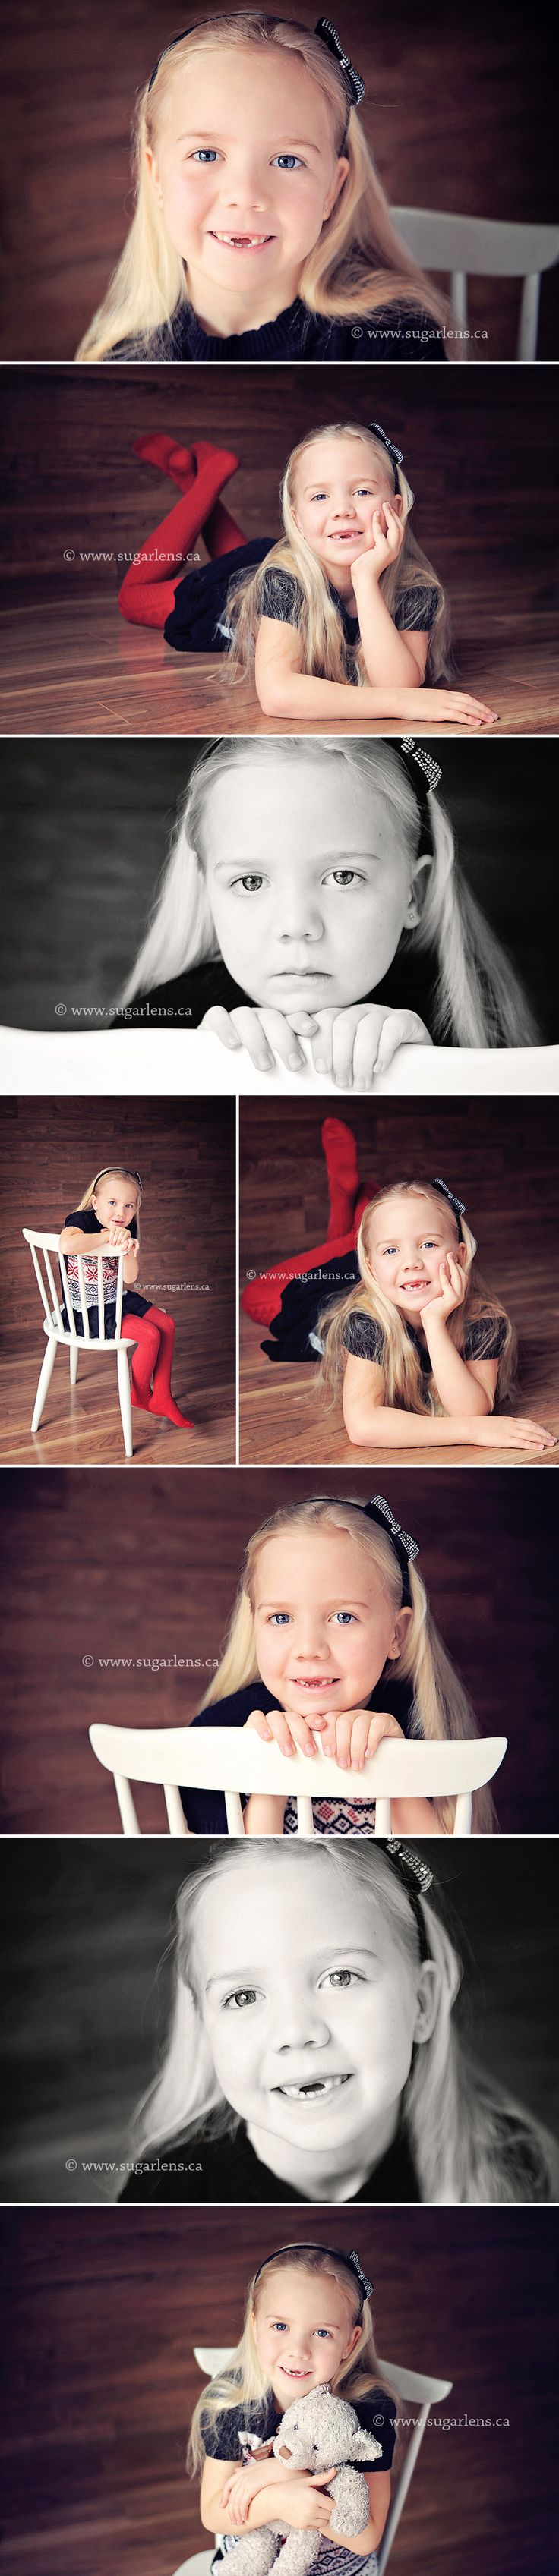 sweetie! studio pose options/angles with one backdrop